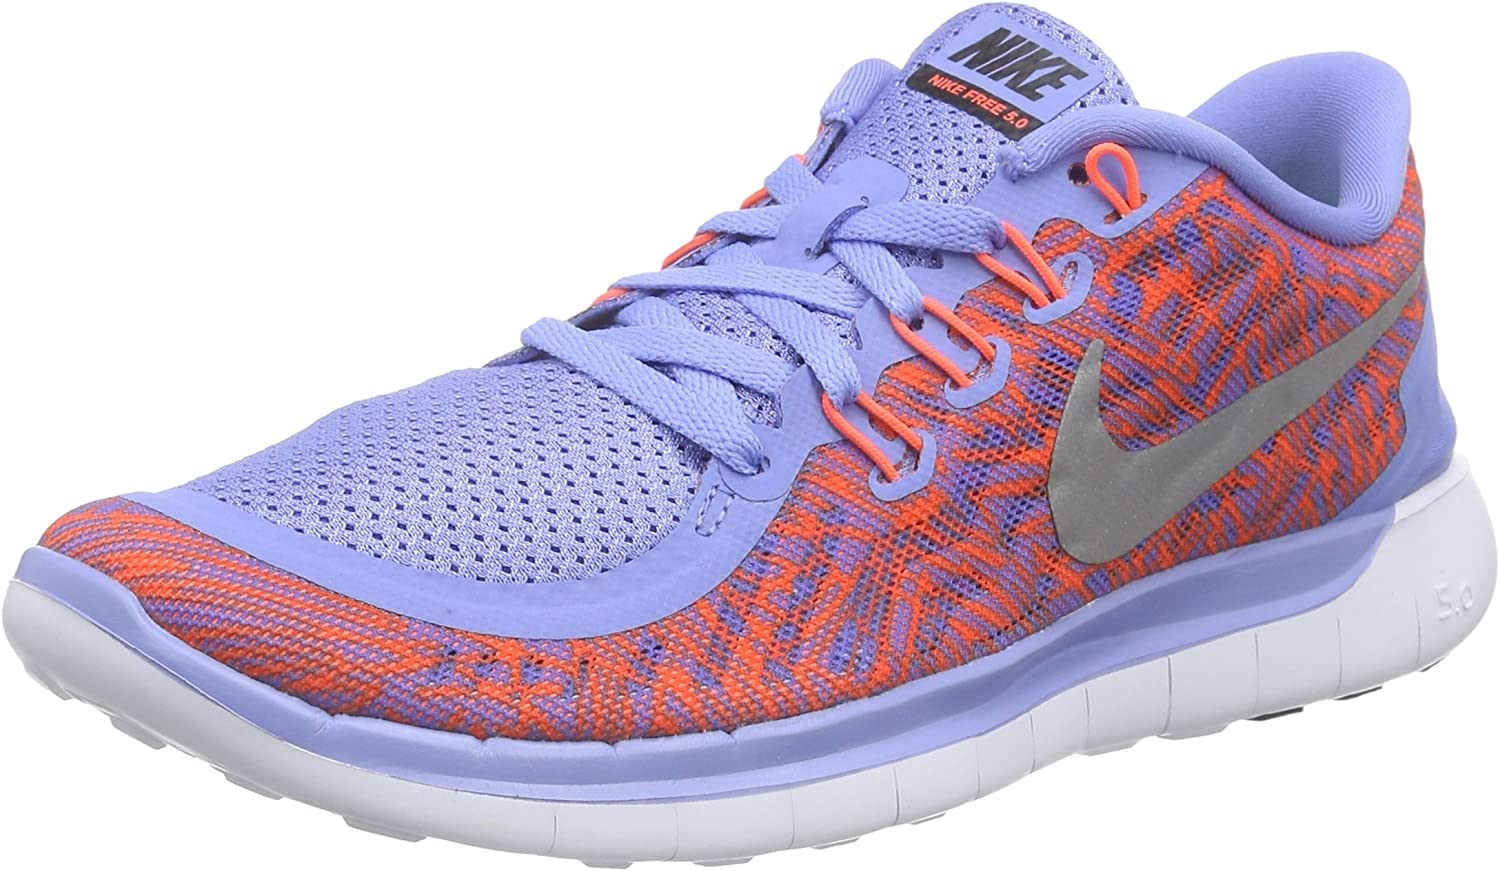 Nike Free 5.0 Print Womens Running shoes bluee New In Box